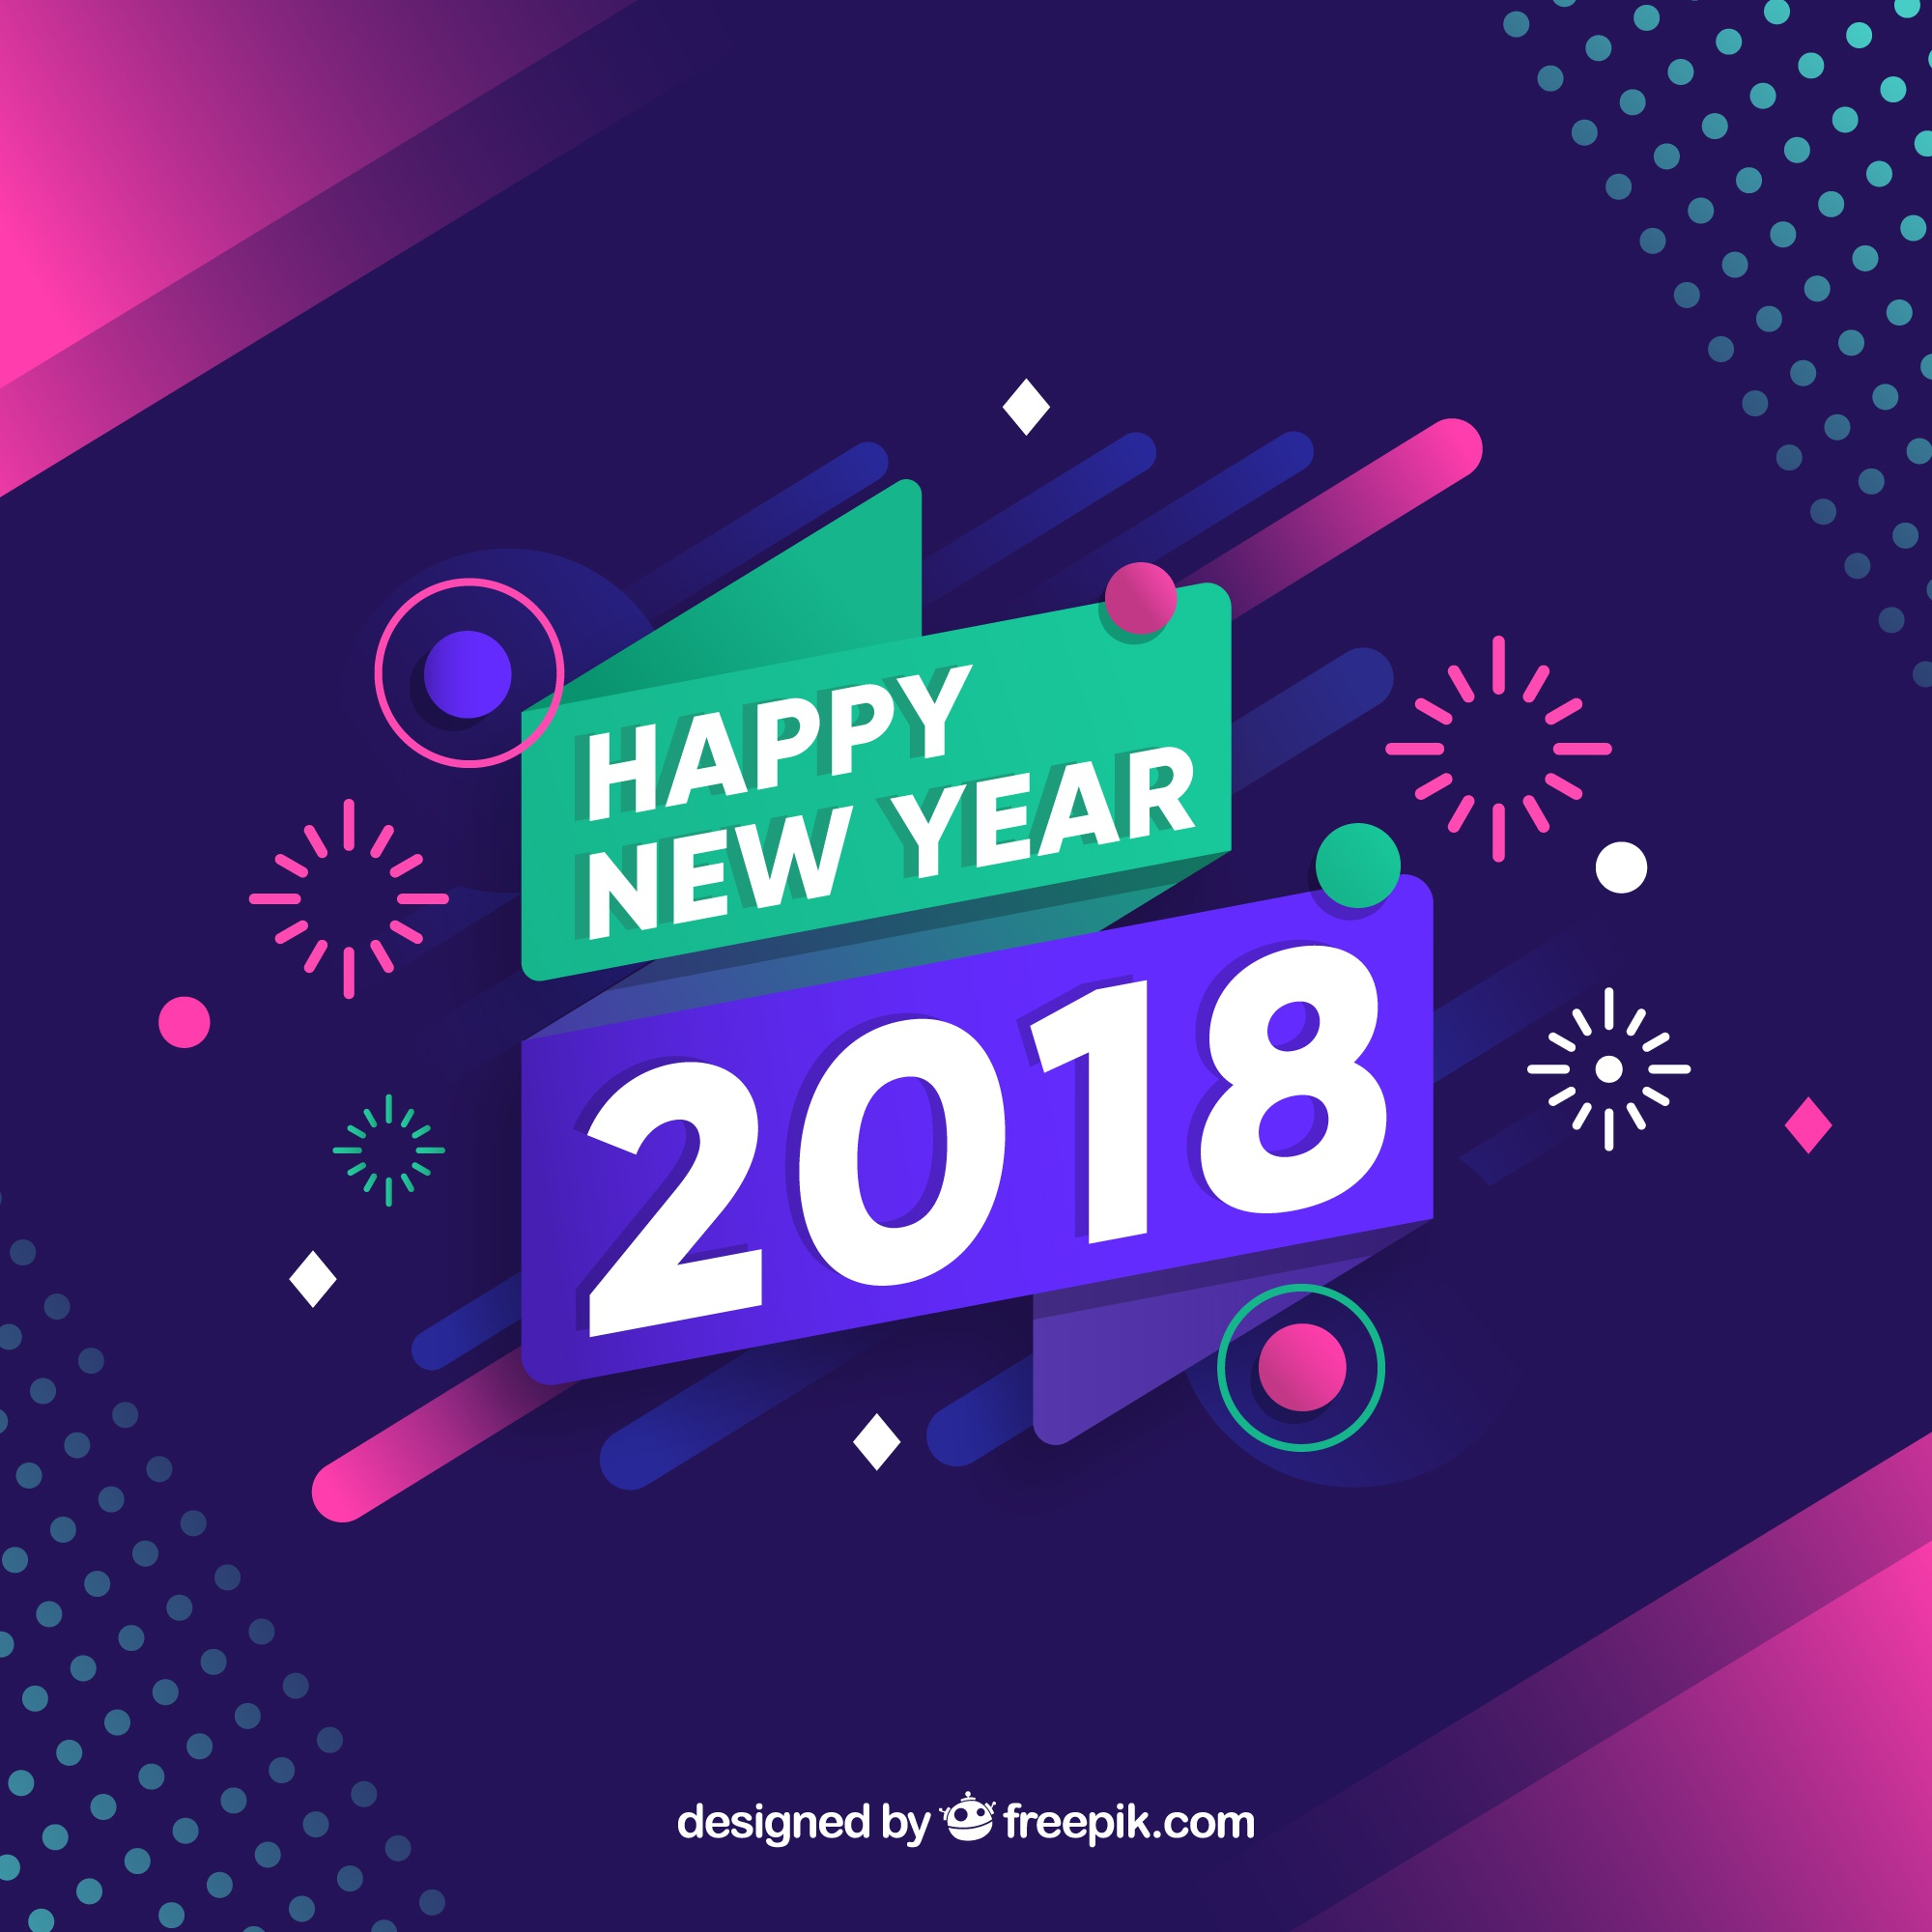 New year 2018  background with fireworks